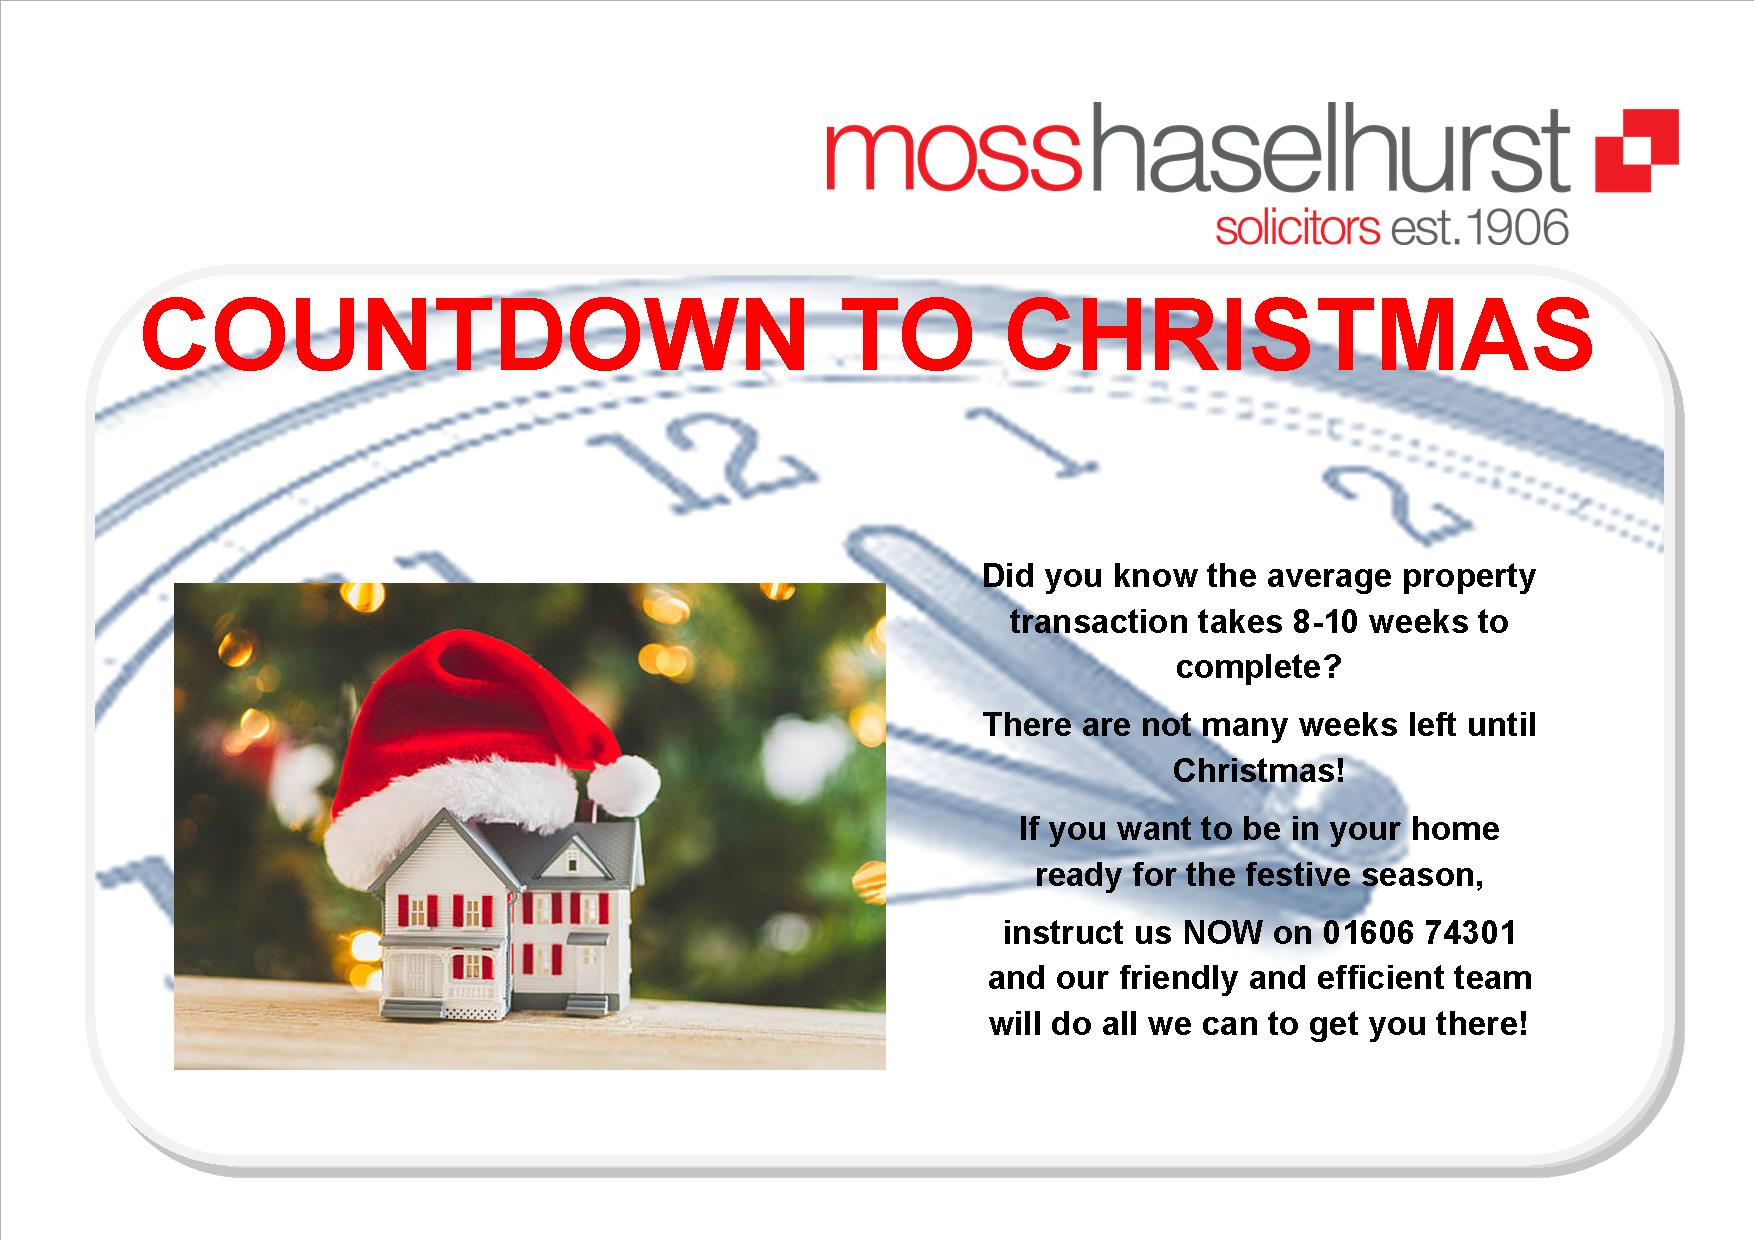 Until Christmas 10 Weeks Till Christmas.Countdown To Christmas Mosshaselhurst Solicitors